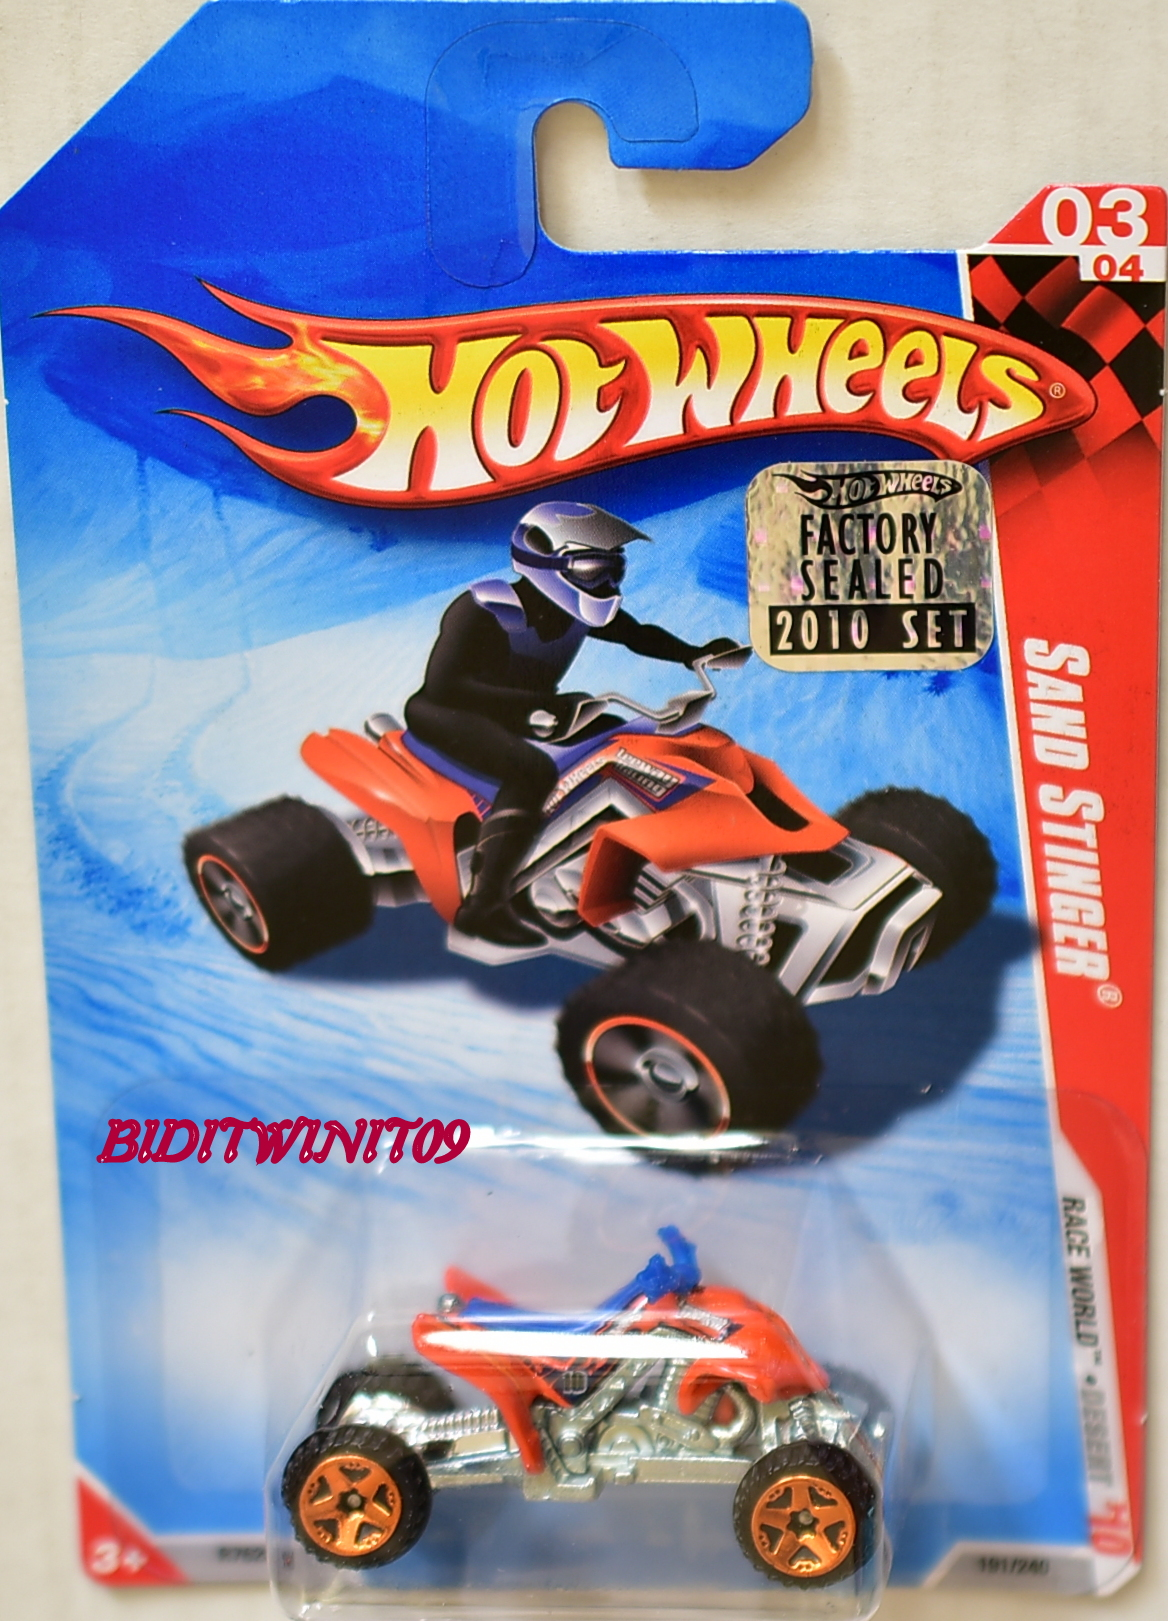 HOT WHEELS 2010 RACE WORD SAND STINGER #03/04 FACTORY SEALED E+